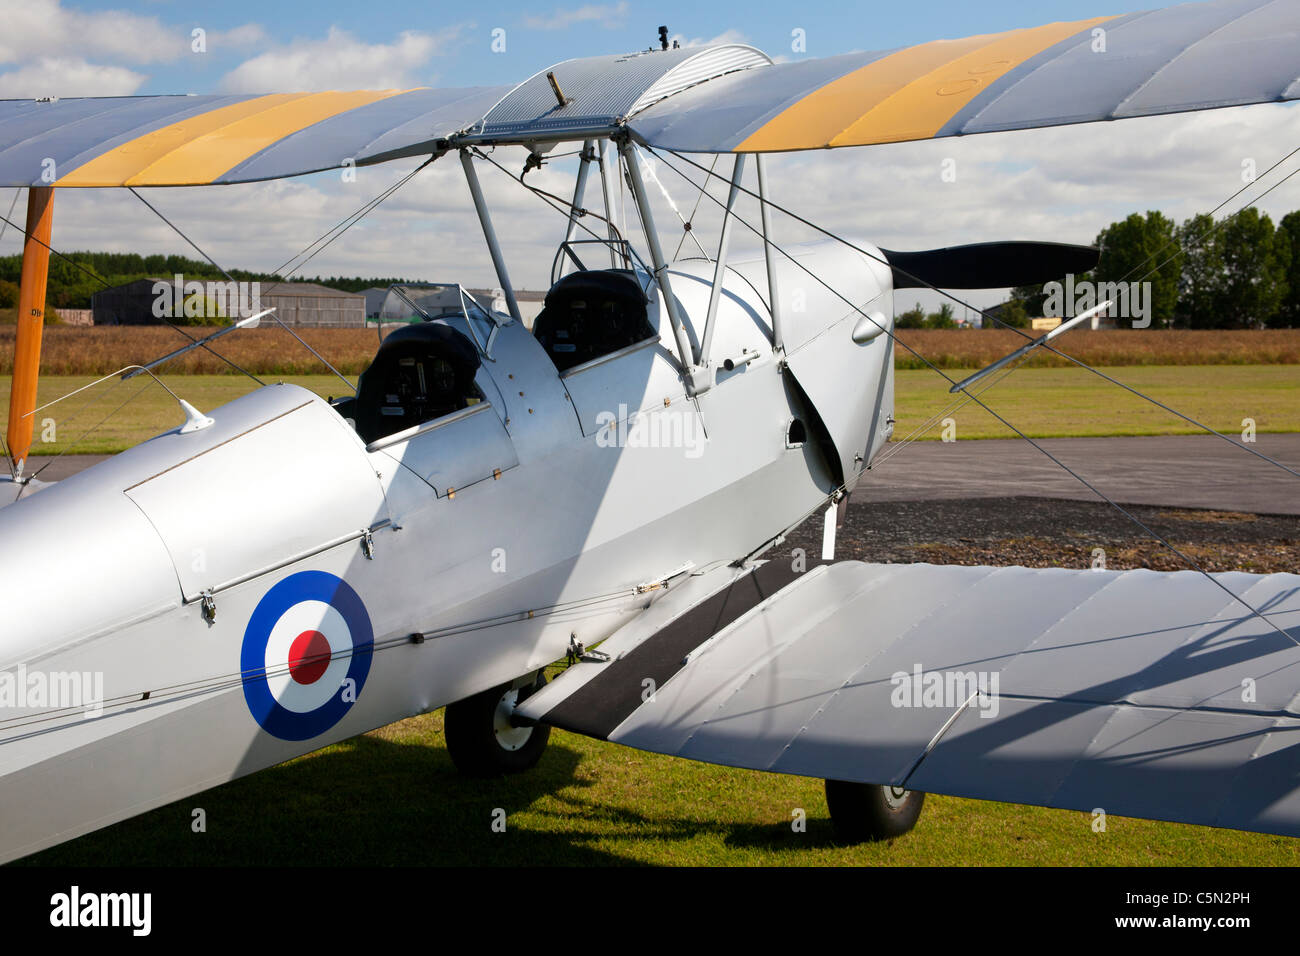 De Havilland DH82A Tiger Moth T7909 G-ANON on the ground - Stock Image